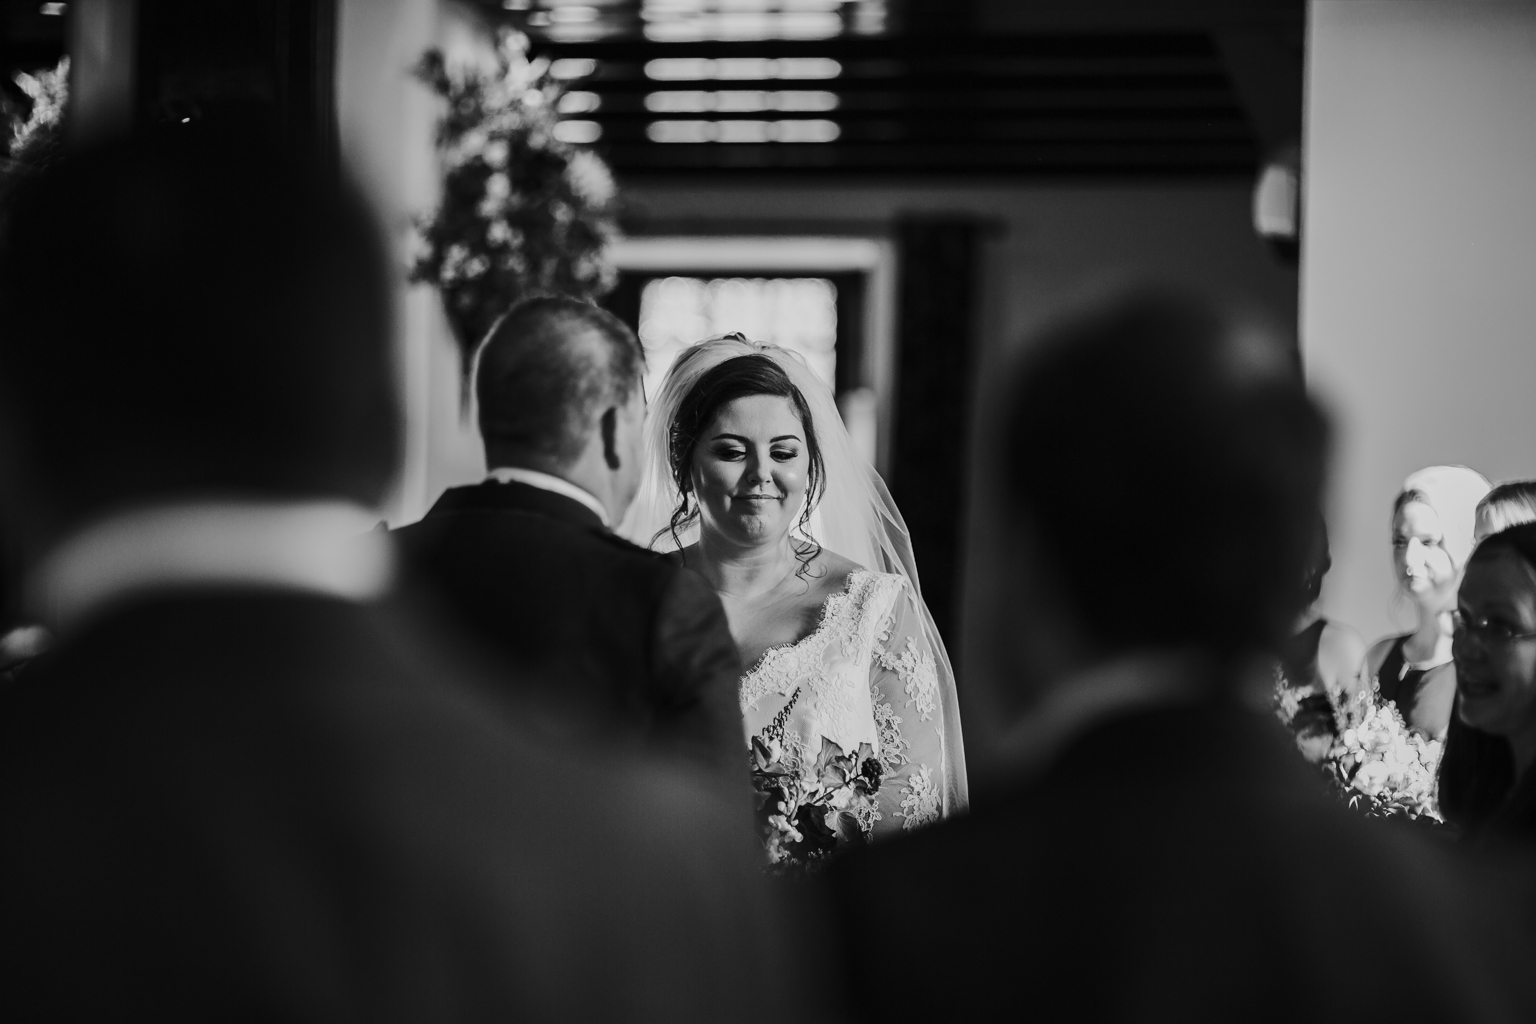 Black and white bridal portrait at the wedding ceremony